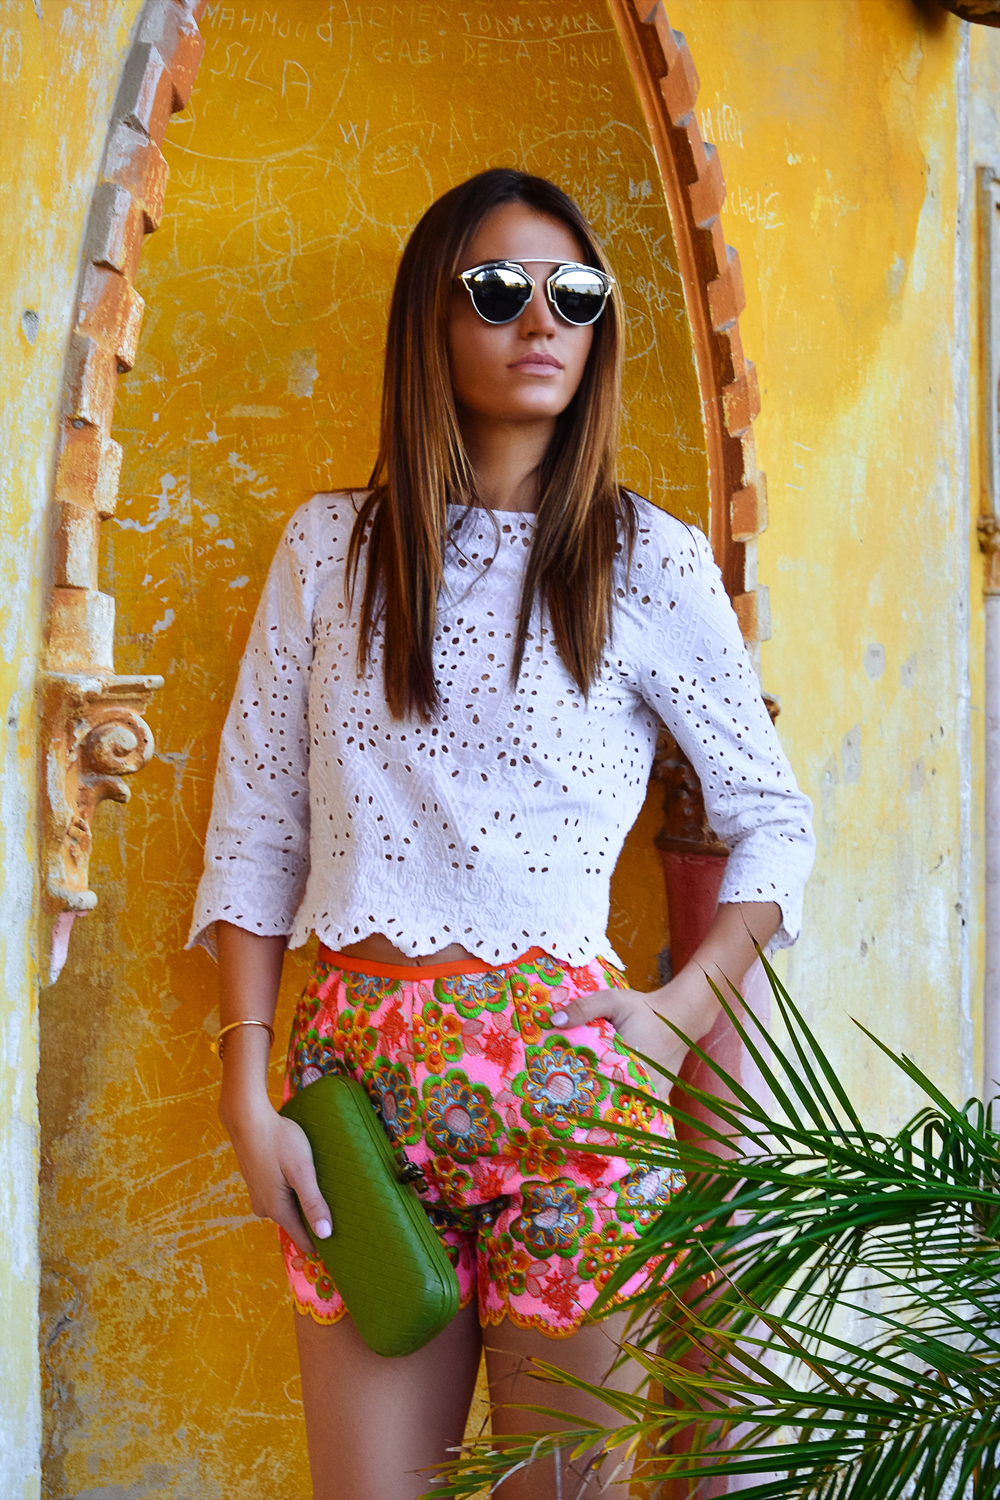 Superb Manoush floral patterns shorts and cream 3/4 crop top worn by fashion blogger Maureen Kragt in South of France